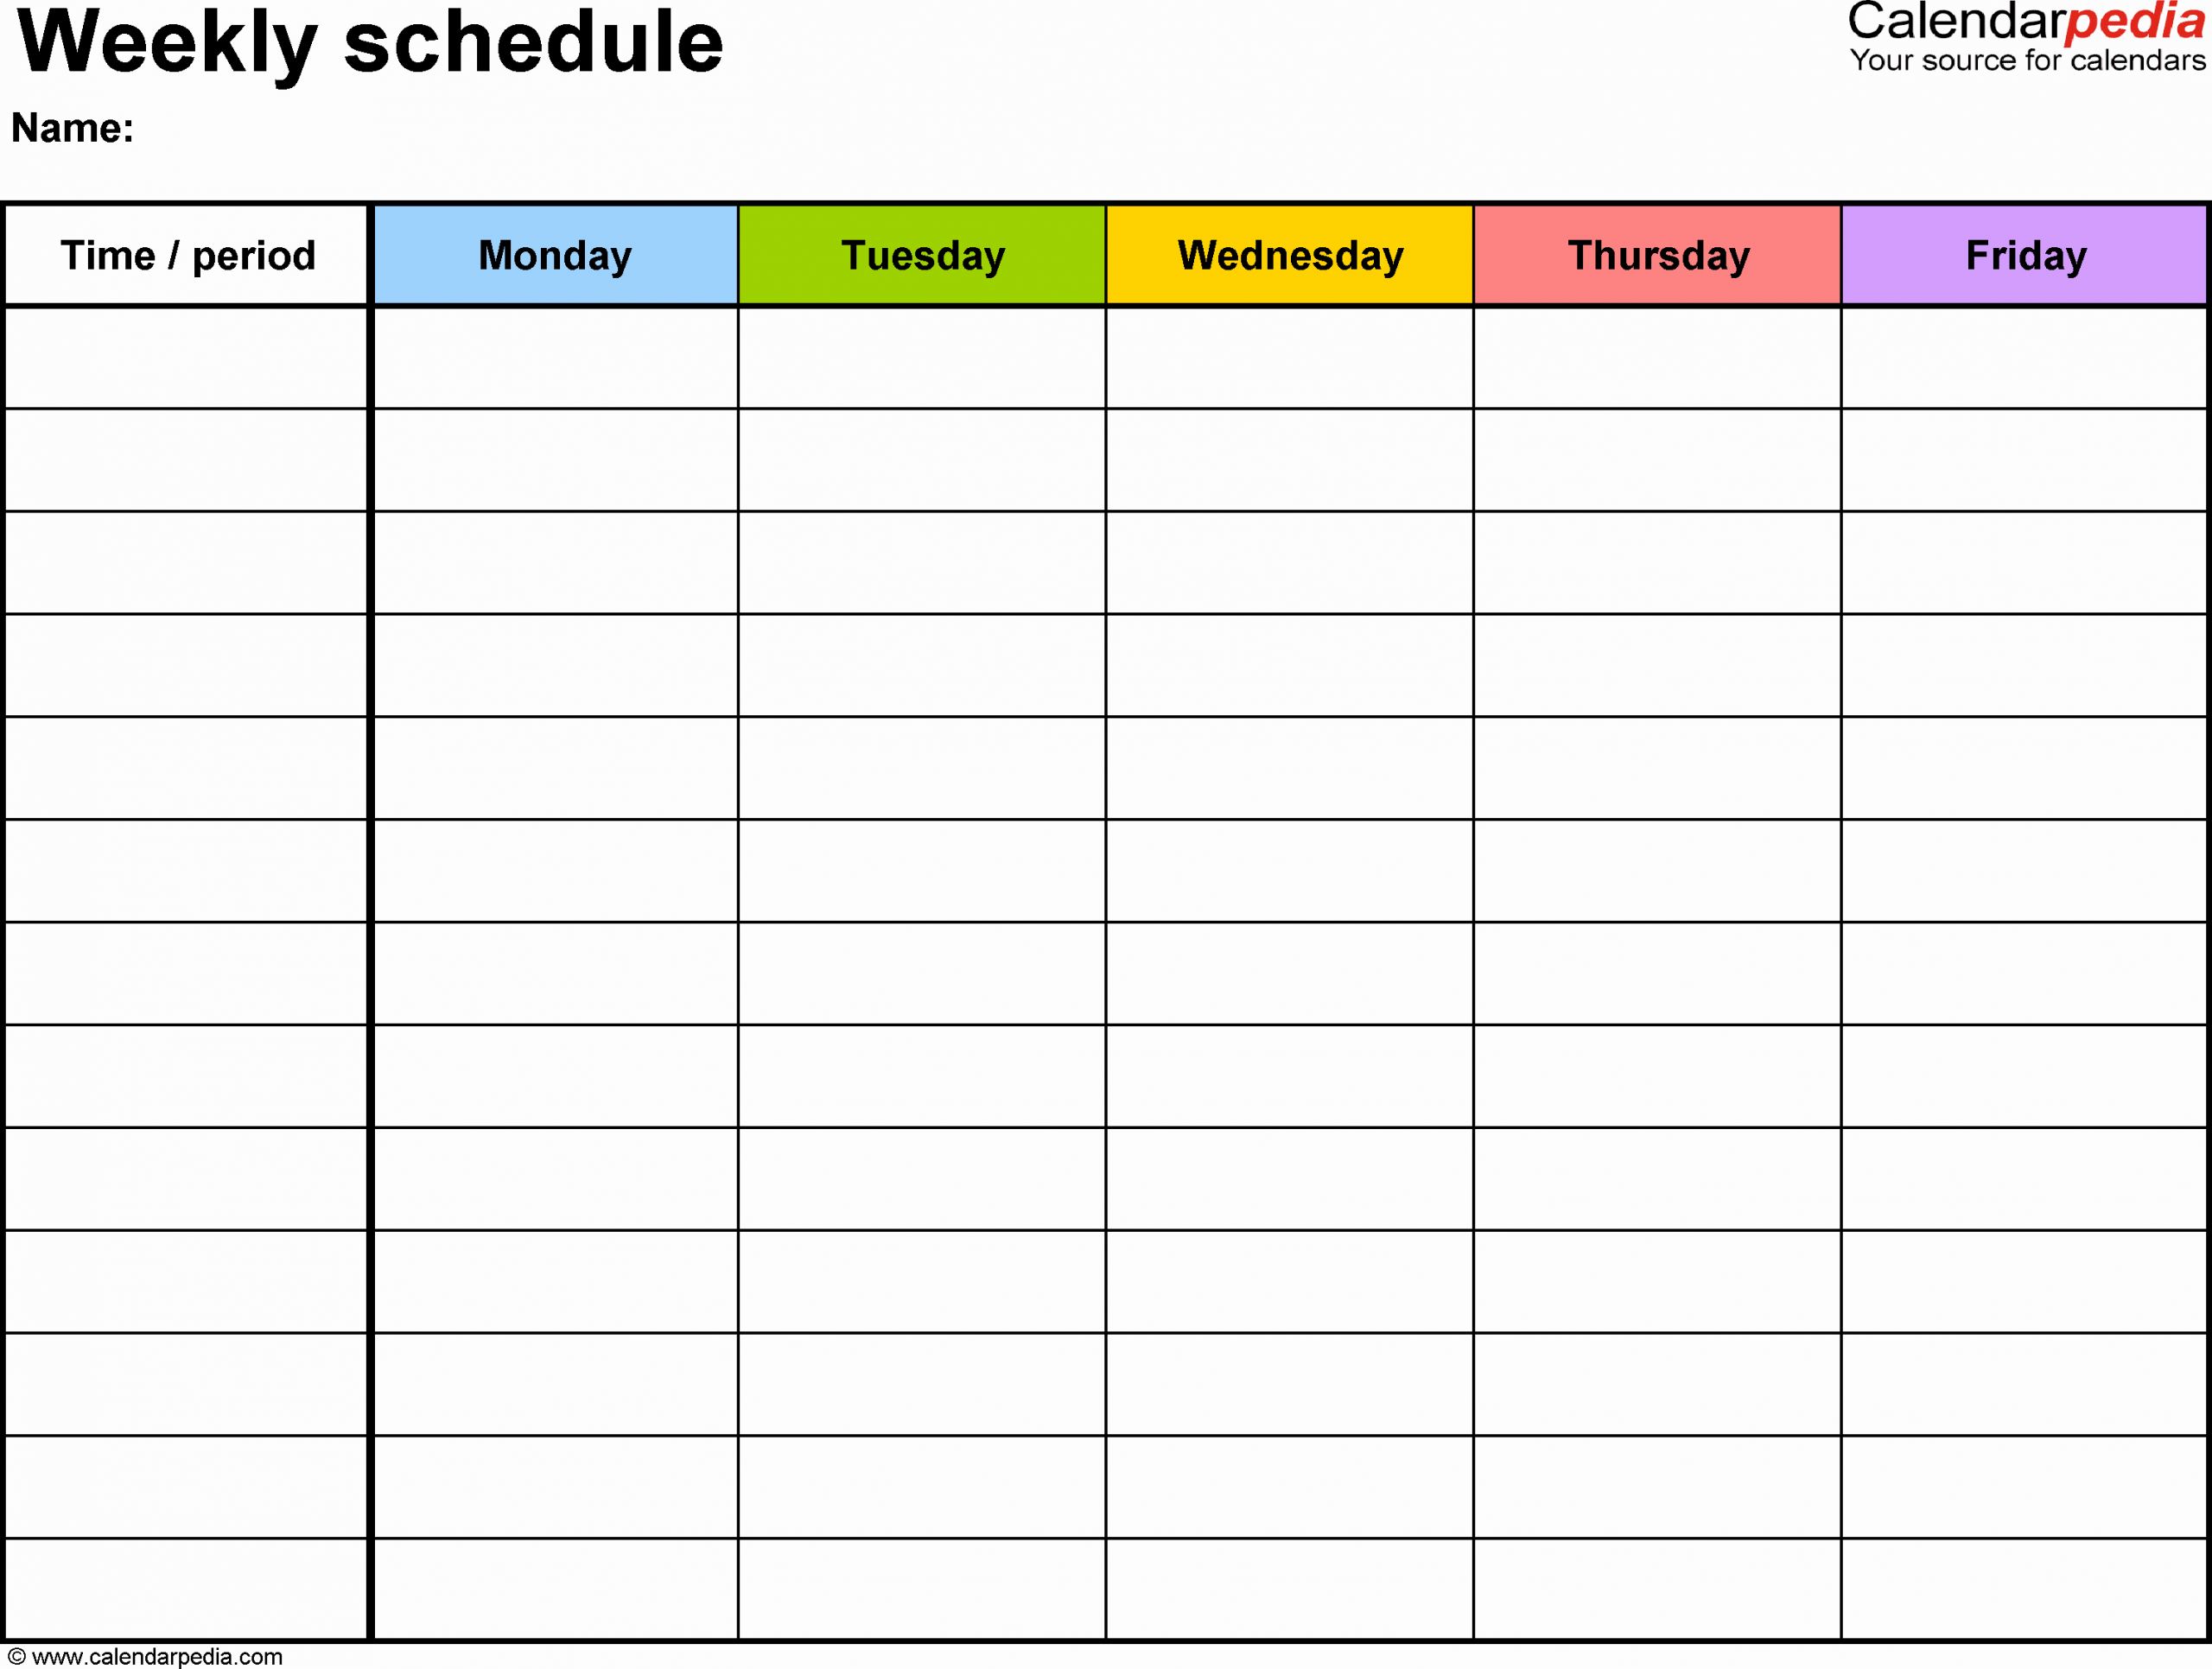 Microsoft Word Schedule Template Inspirational Free Weekly Schedule Templates for Word 18 Templates